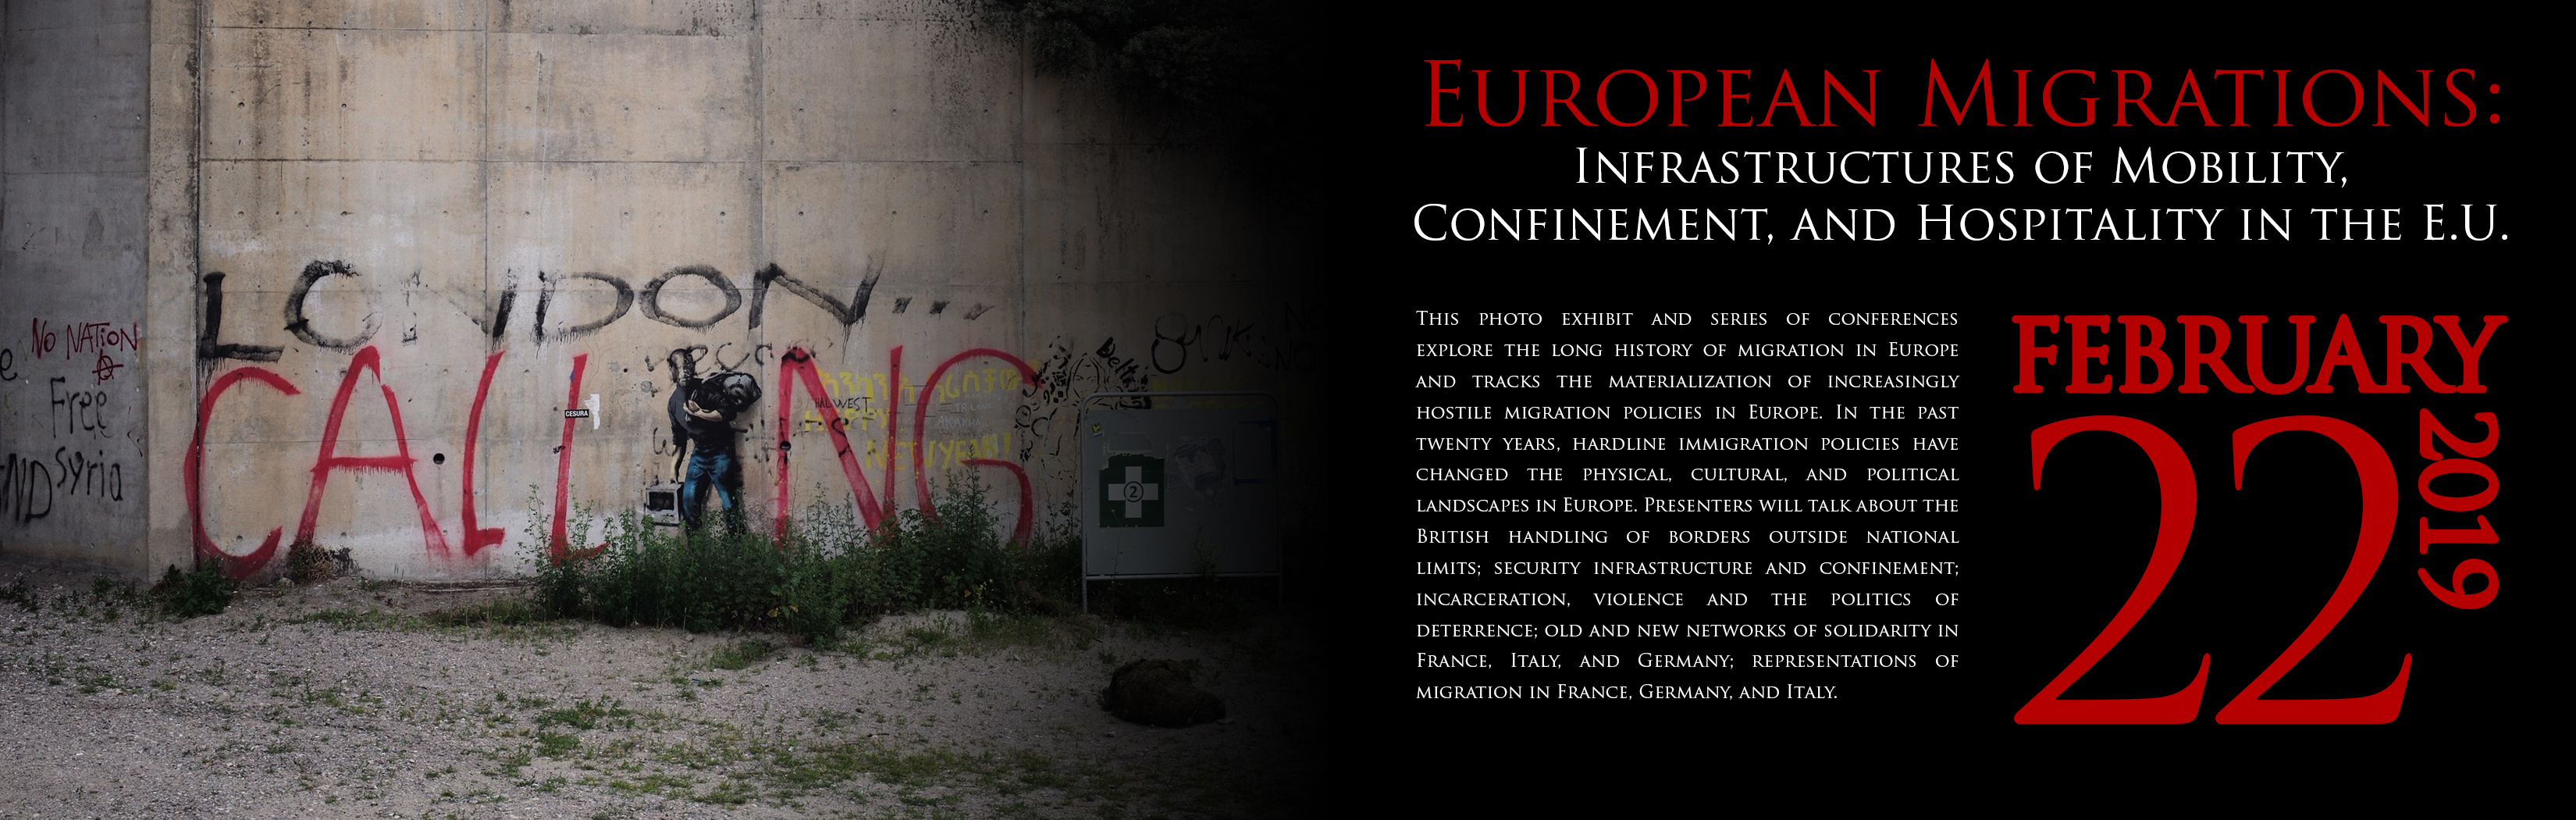 European Migrations: Infrastructures of Mobility, Confinement, and Hospitality in the E.U.